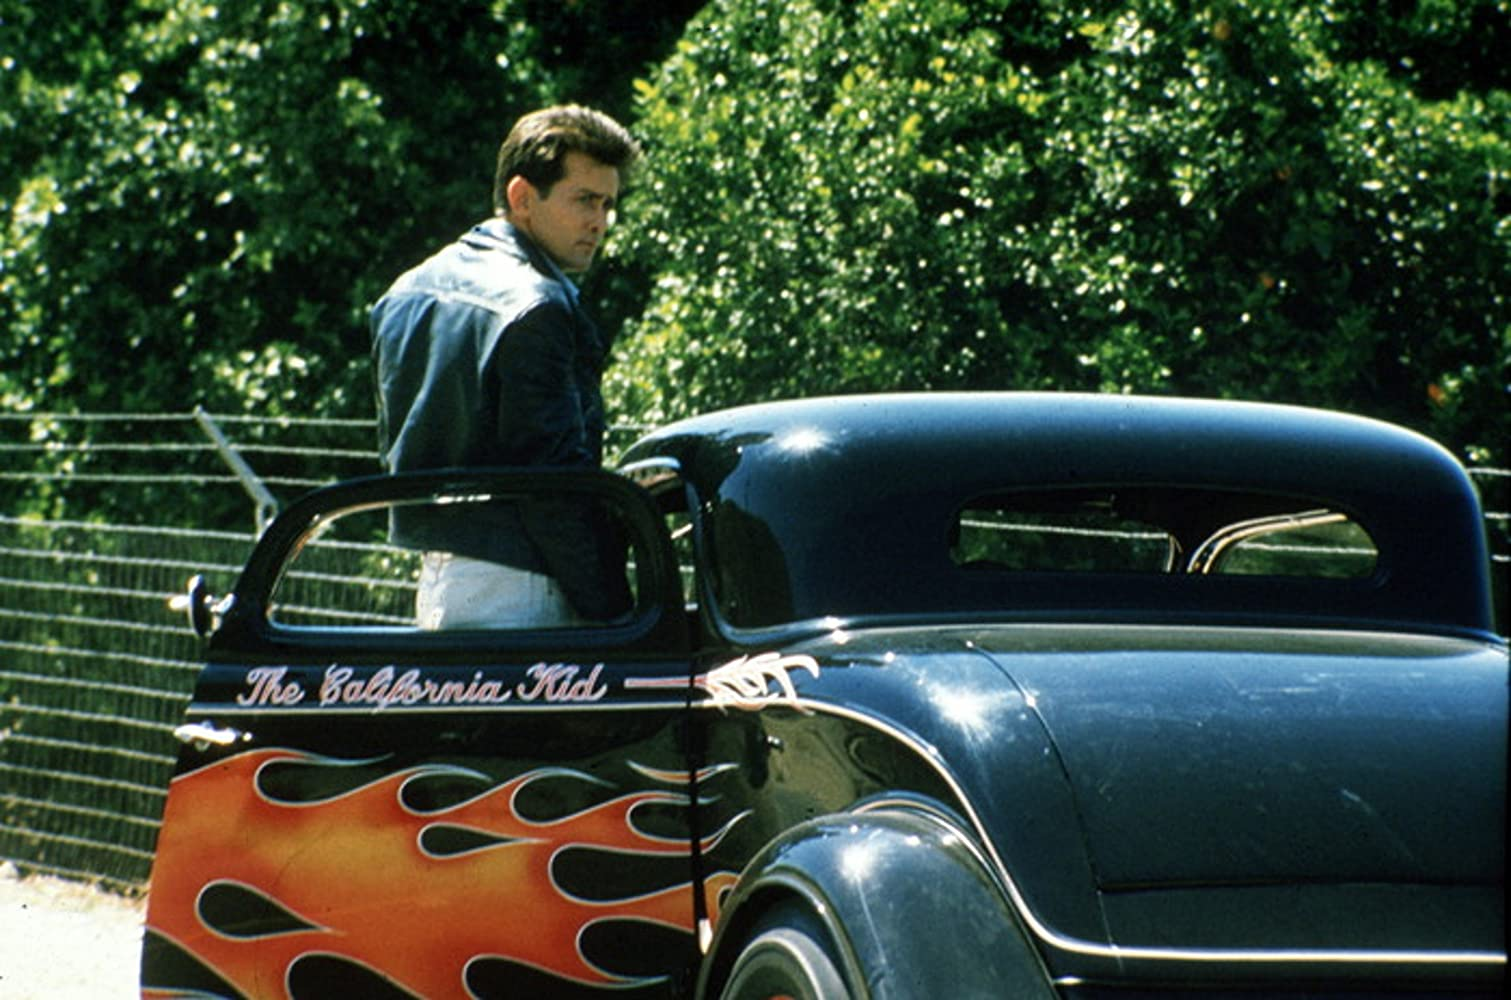 Lesser-Known (Or Maybe Just Old) Car Movies To Watch During the Quarantine Period